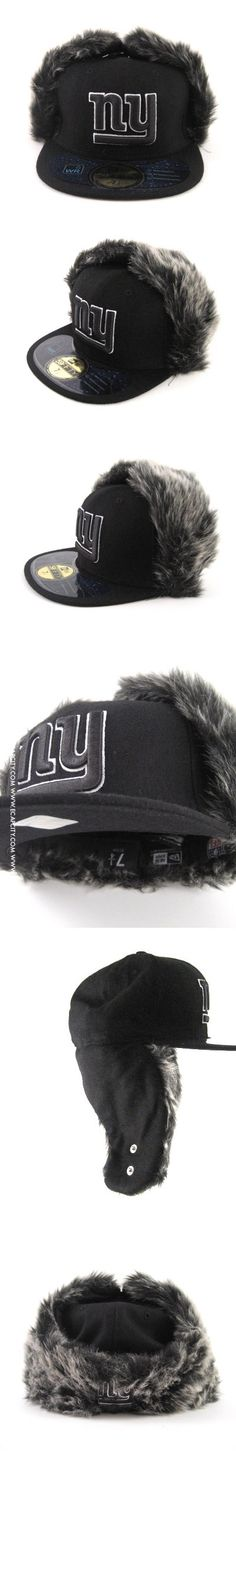 32 Best Top 10 Gifts for Sports Fans   6 New Era Dog Ear Hats images ... dd302ccf403